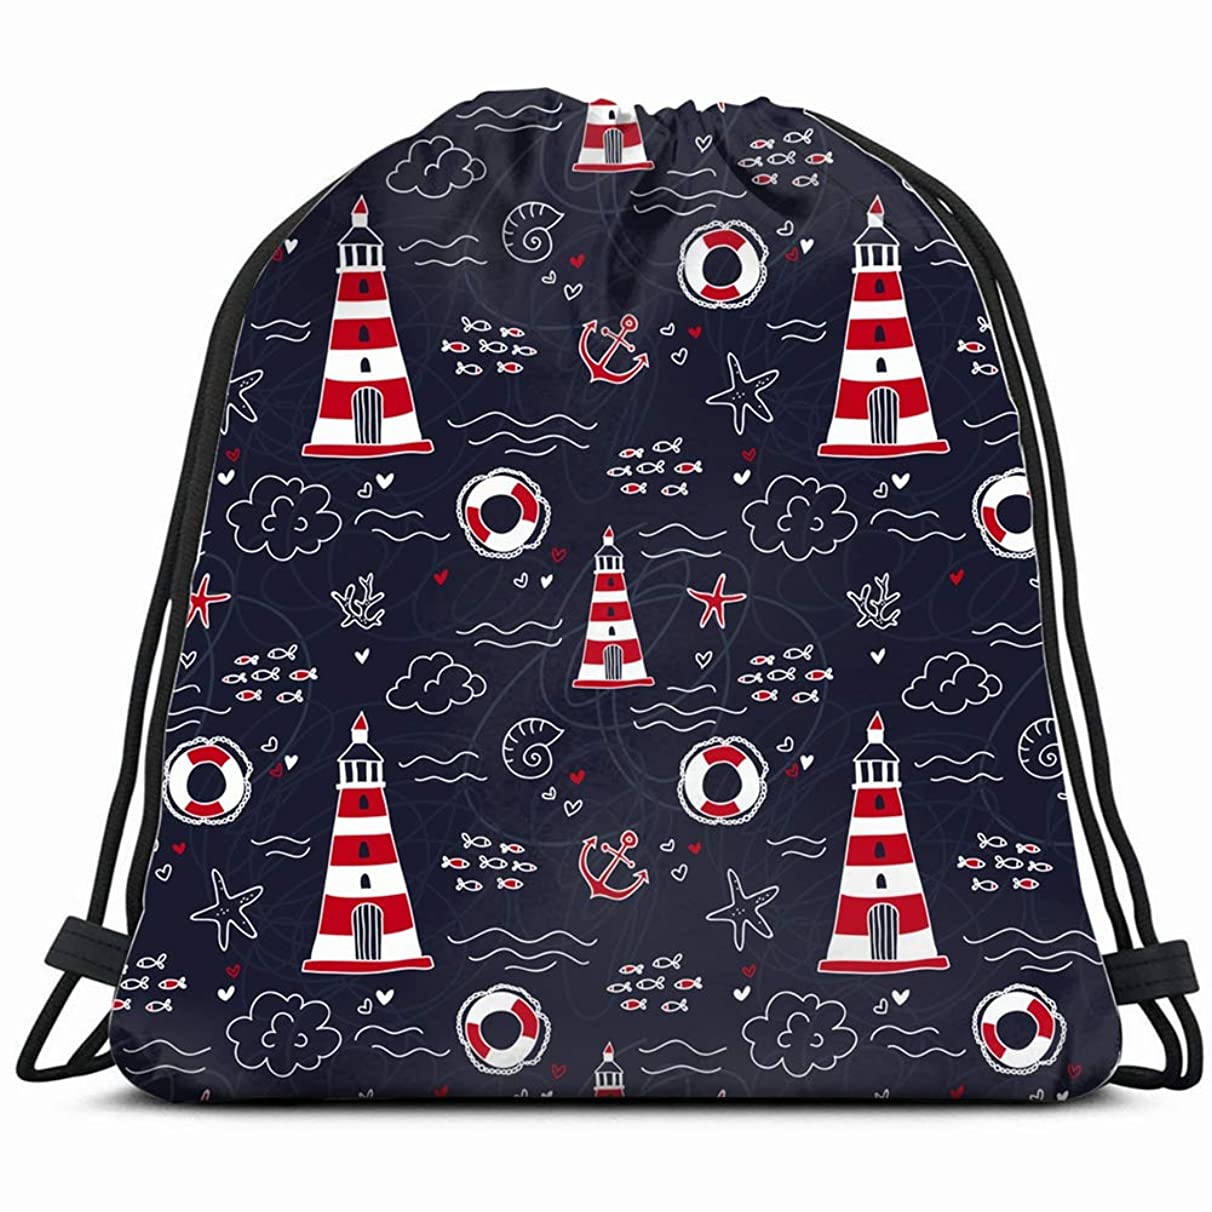 nautical lighthouse cartoon the arts Drawstring Backpack Gym Sack Lightweight Bag Water Resistant Gym Backpack for Women&Men for Sports,Travelling,Hiking,Camping,Shopping Yoga